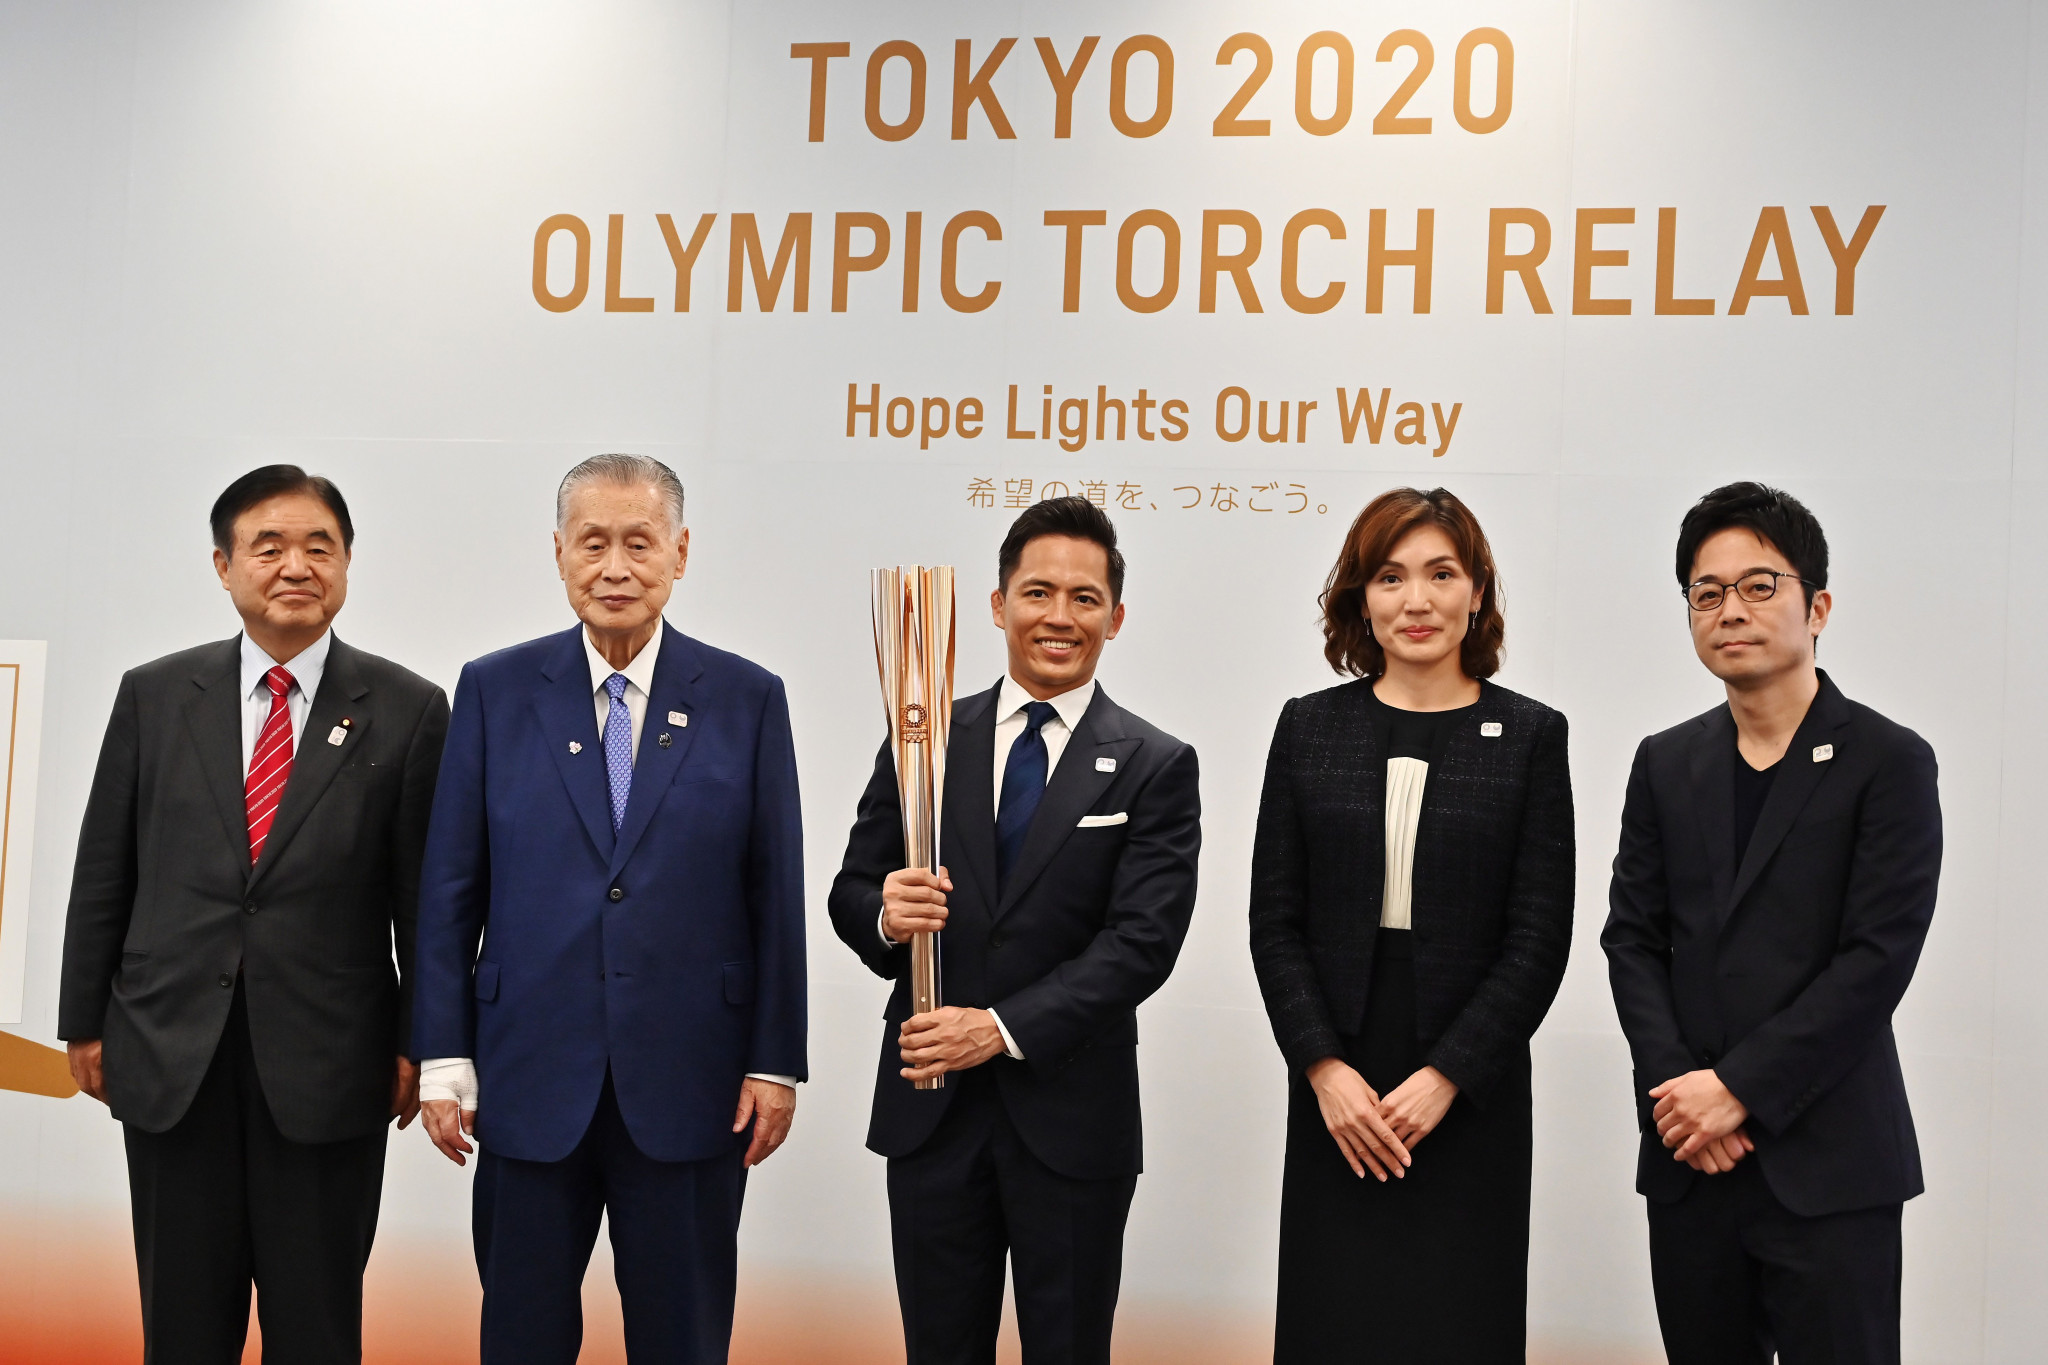 Tokyo 2020 Olympic Torch Relay set to visit Fukushima nuclear complex